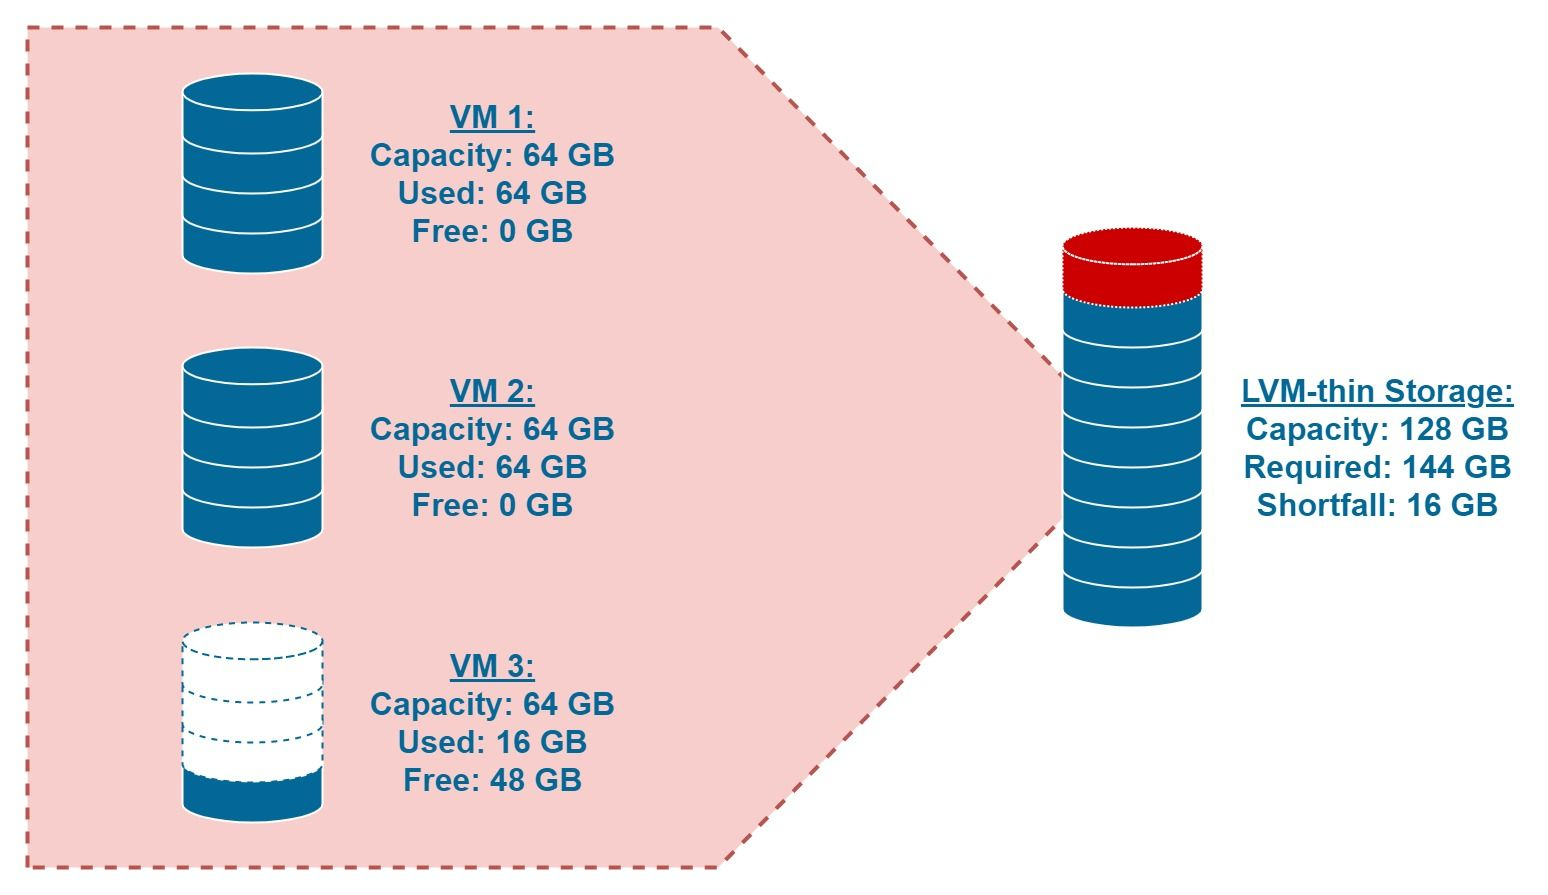 LVM-thin Storage Overextended: The VMs require 144 GB, but we only have 128 GB available.